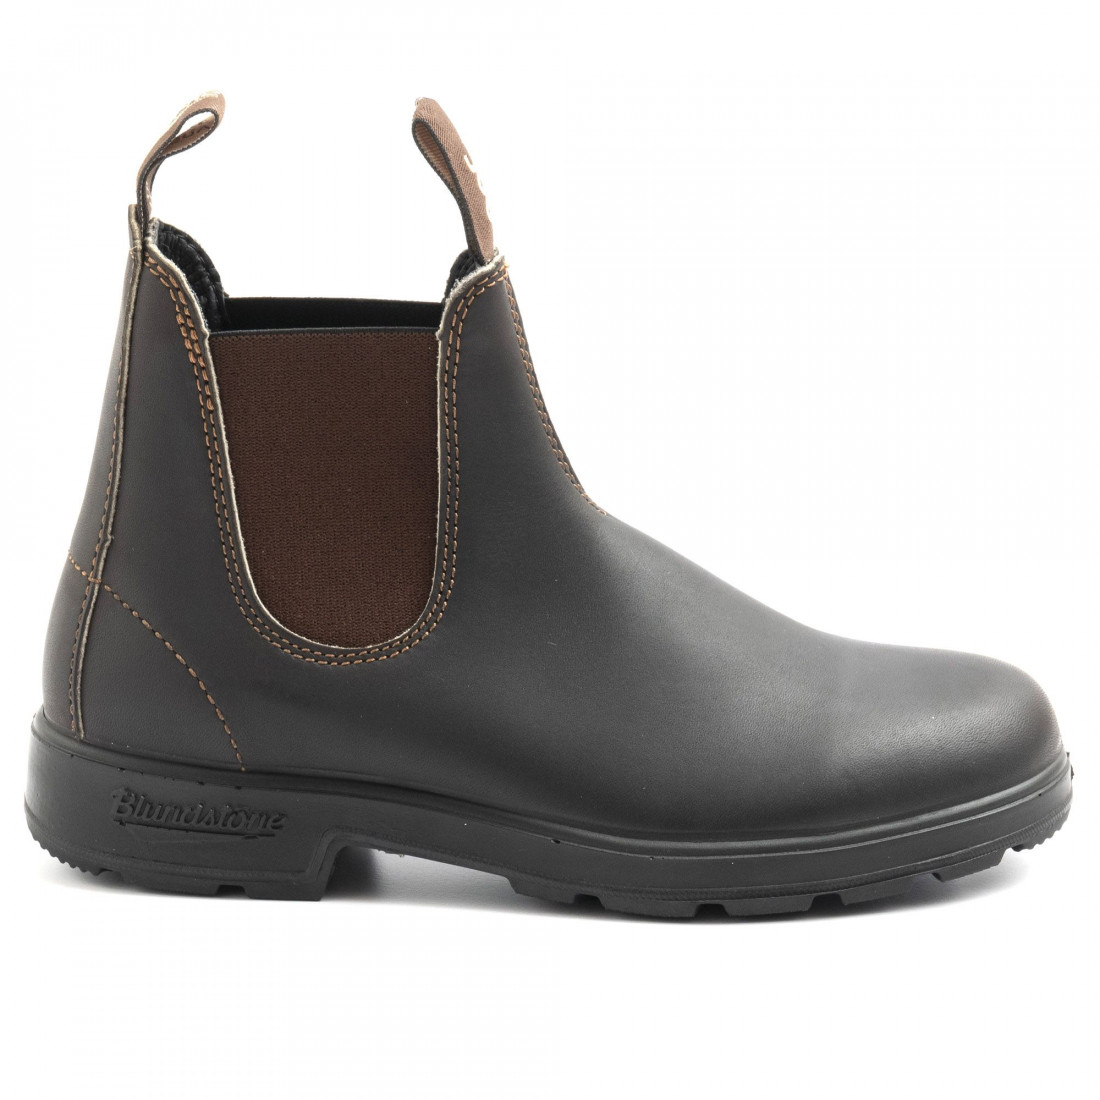 booties man blundstone bccal0010 500stout brown 6347